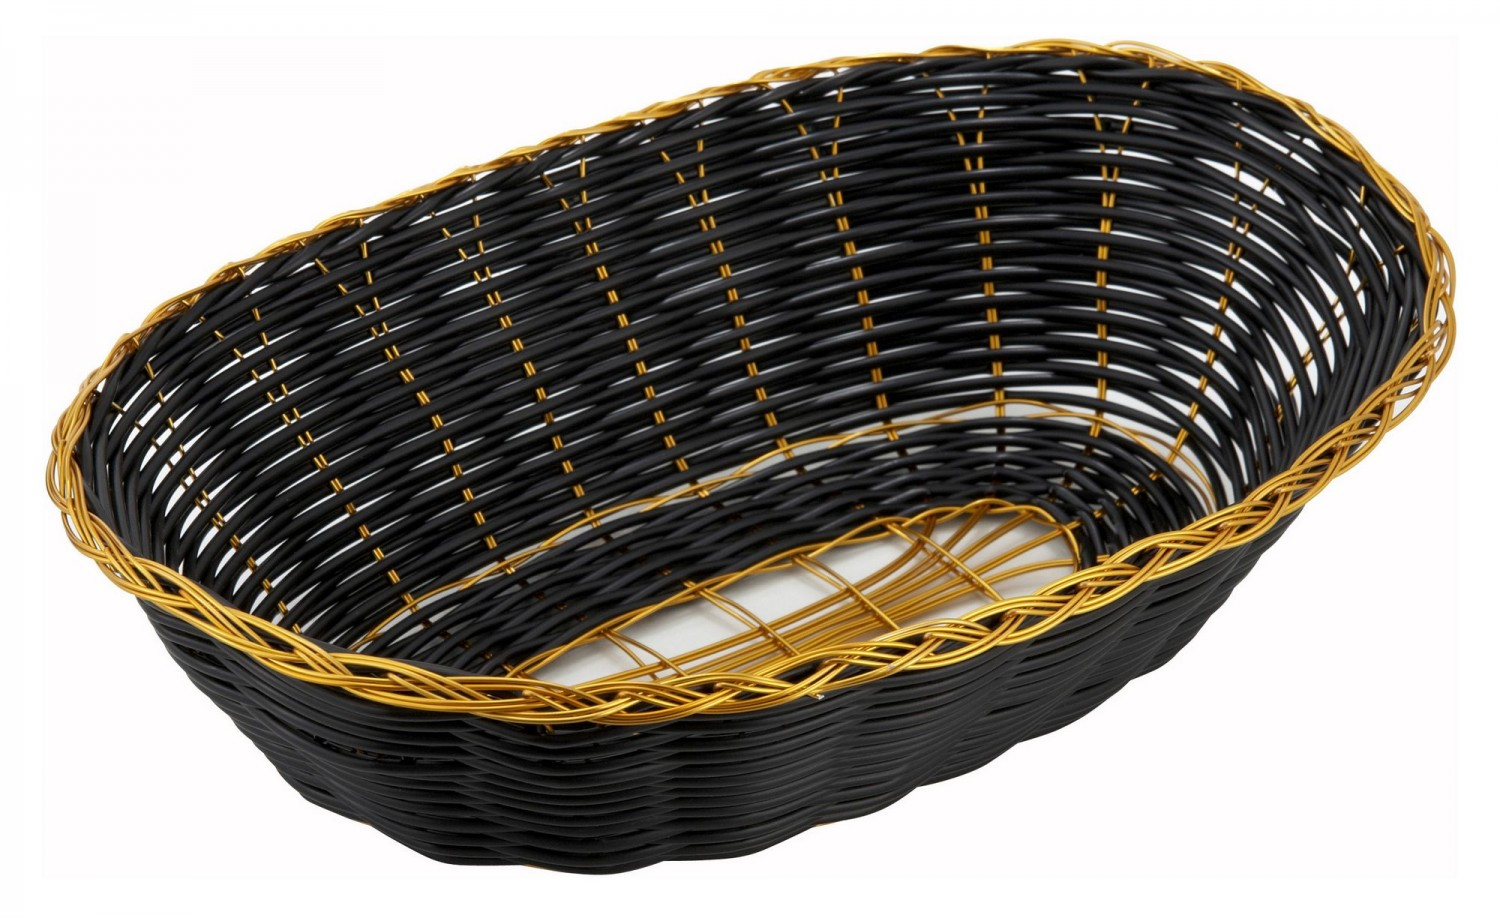 Winco PWBK-9V Oval Woven Baskets - 1 doz